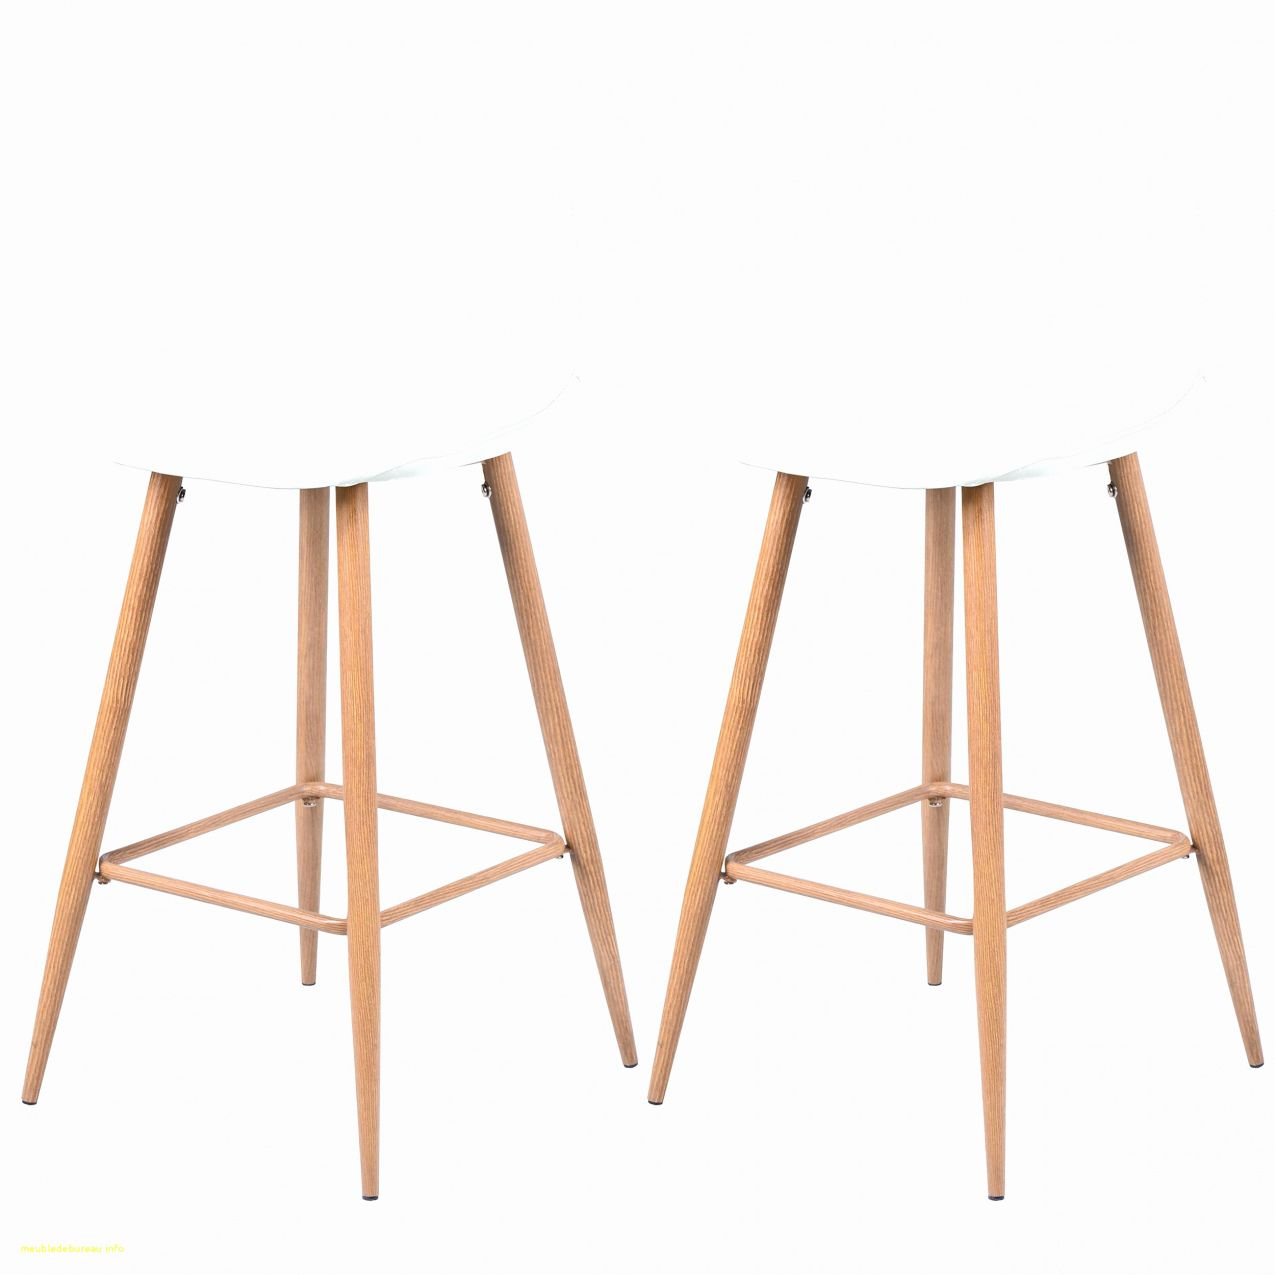 55 Tabouret Haut Maison Du Monde 2018 Check More At Https Www Unionjacktrooper Com 55 Tabouret Haut Maison Du Monde 2019 Home Decor Decor Bar Stools